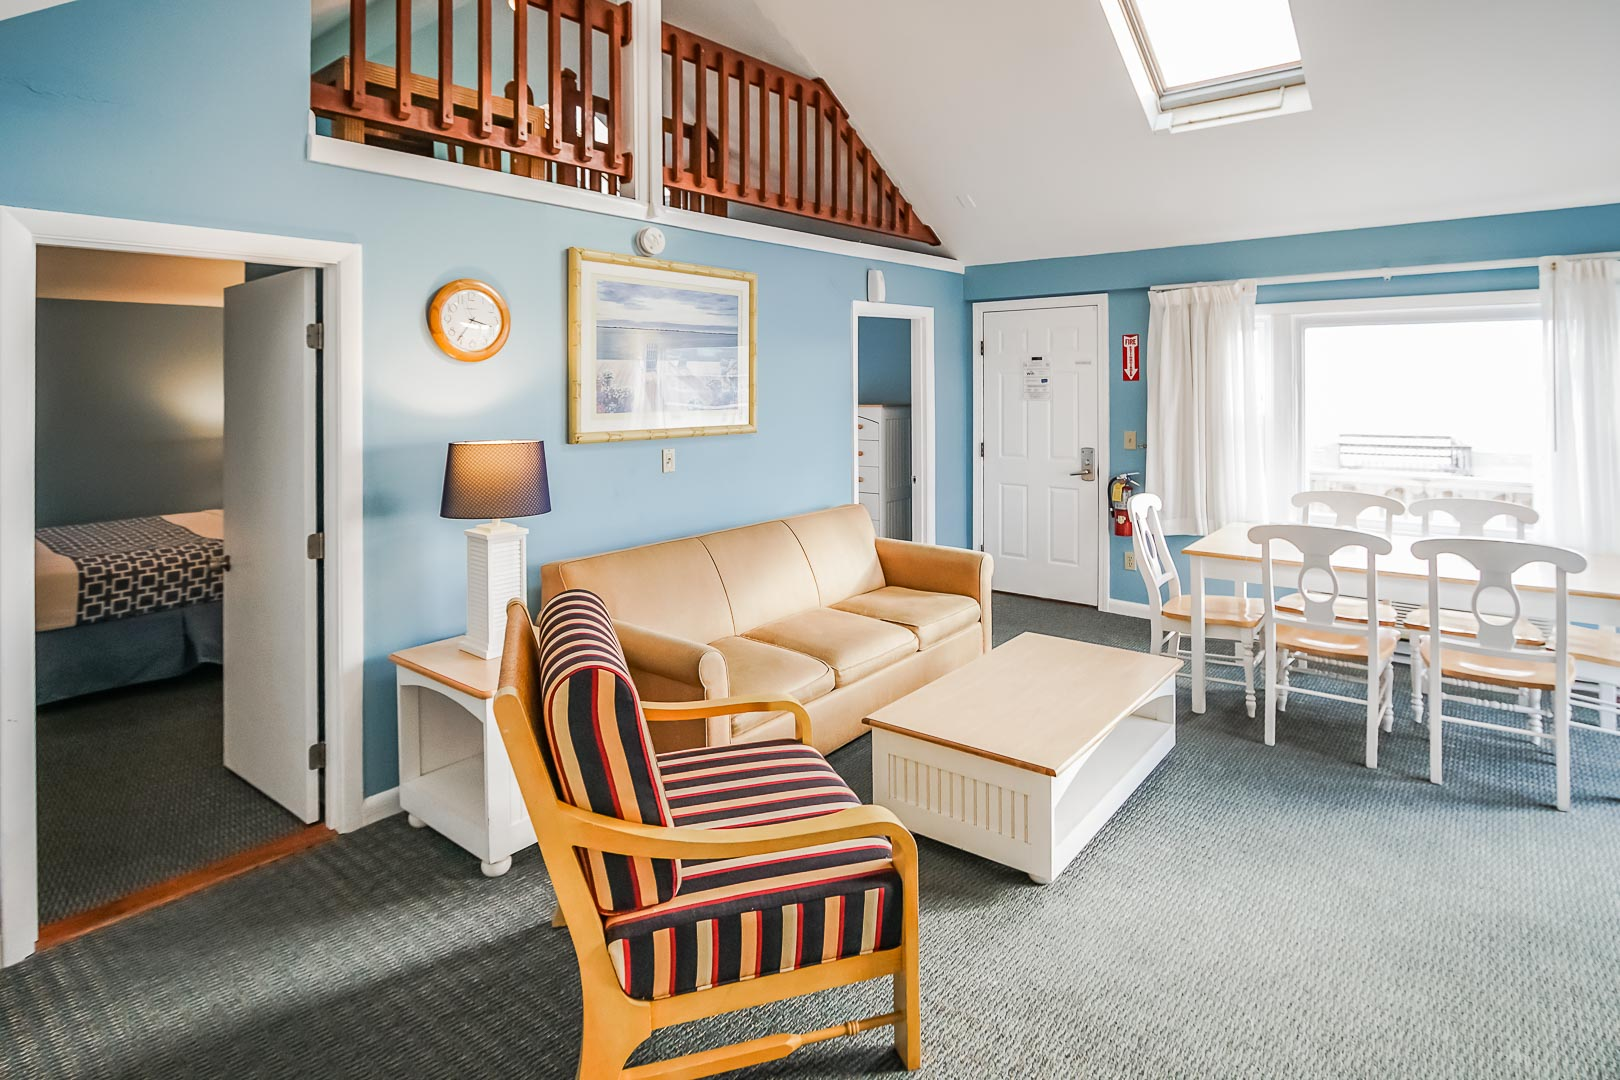 An expansive one bedroom with a loft at VRI's Seawinds II Resort in Massachusetts.